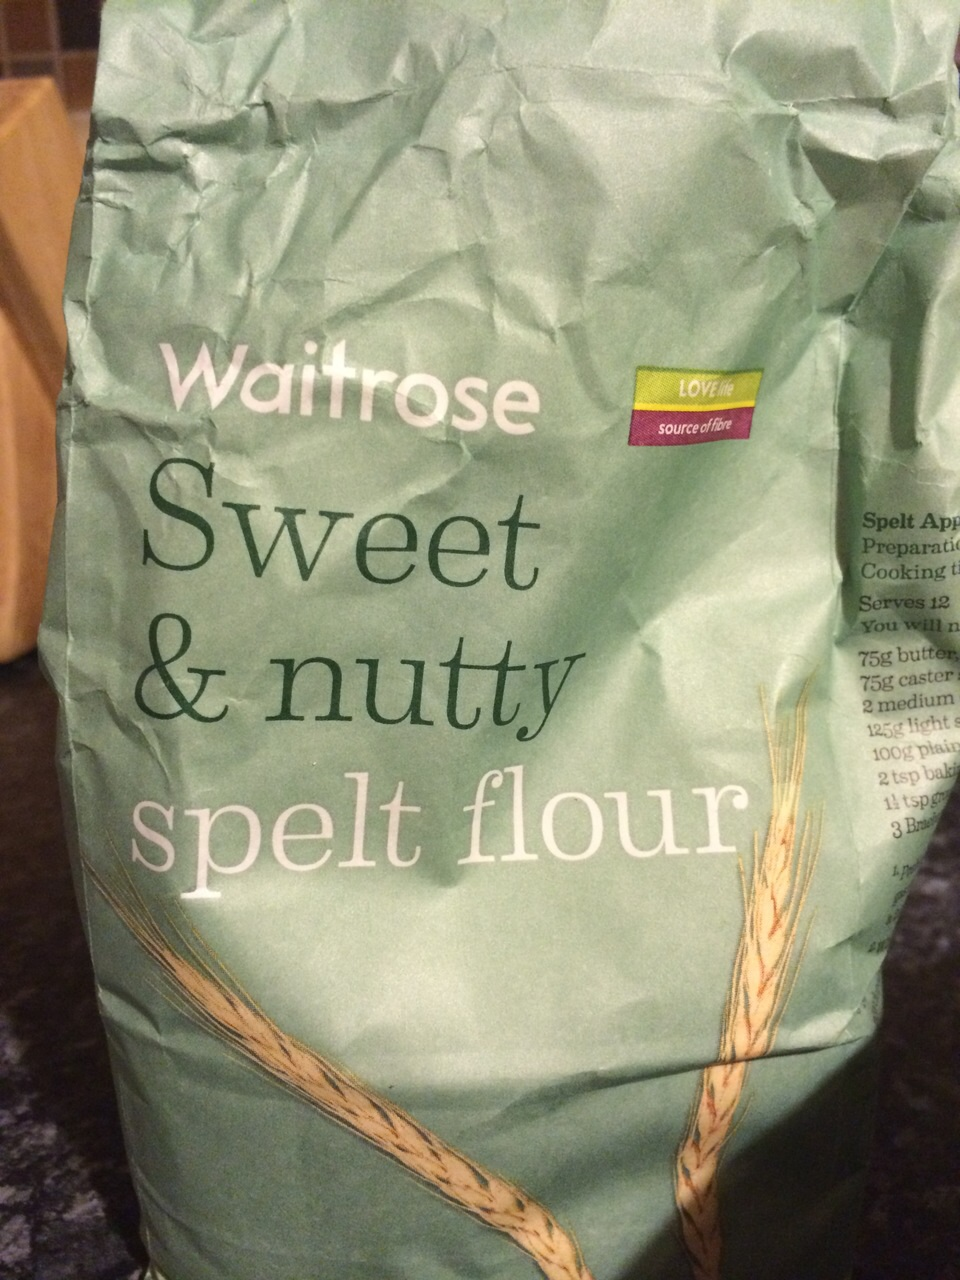 I use this flour; the lighter the flour the better the texture.